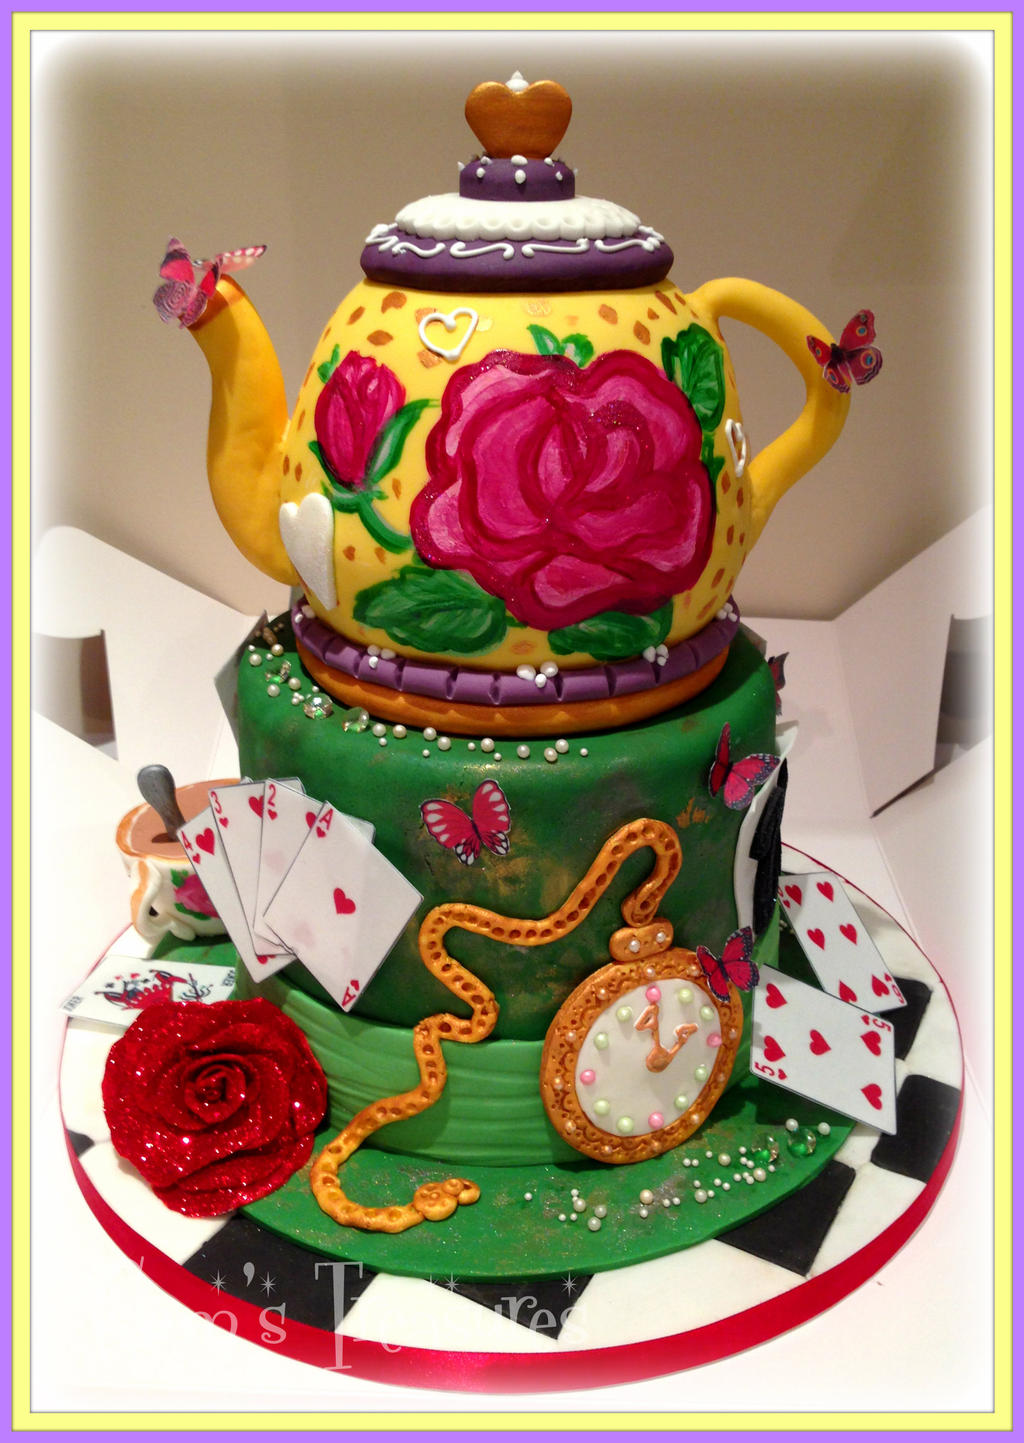 Welcome To The Mad Hatters Tea Party By Gertygetsgangster On Deviantart